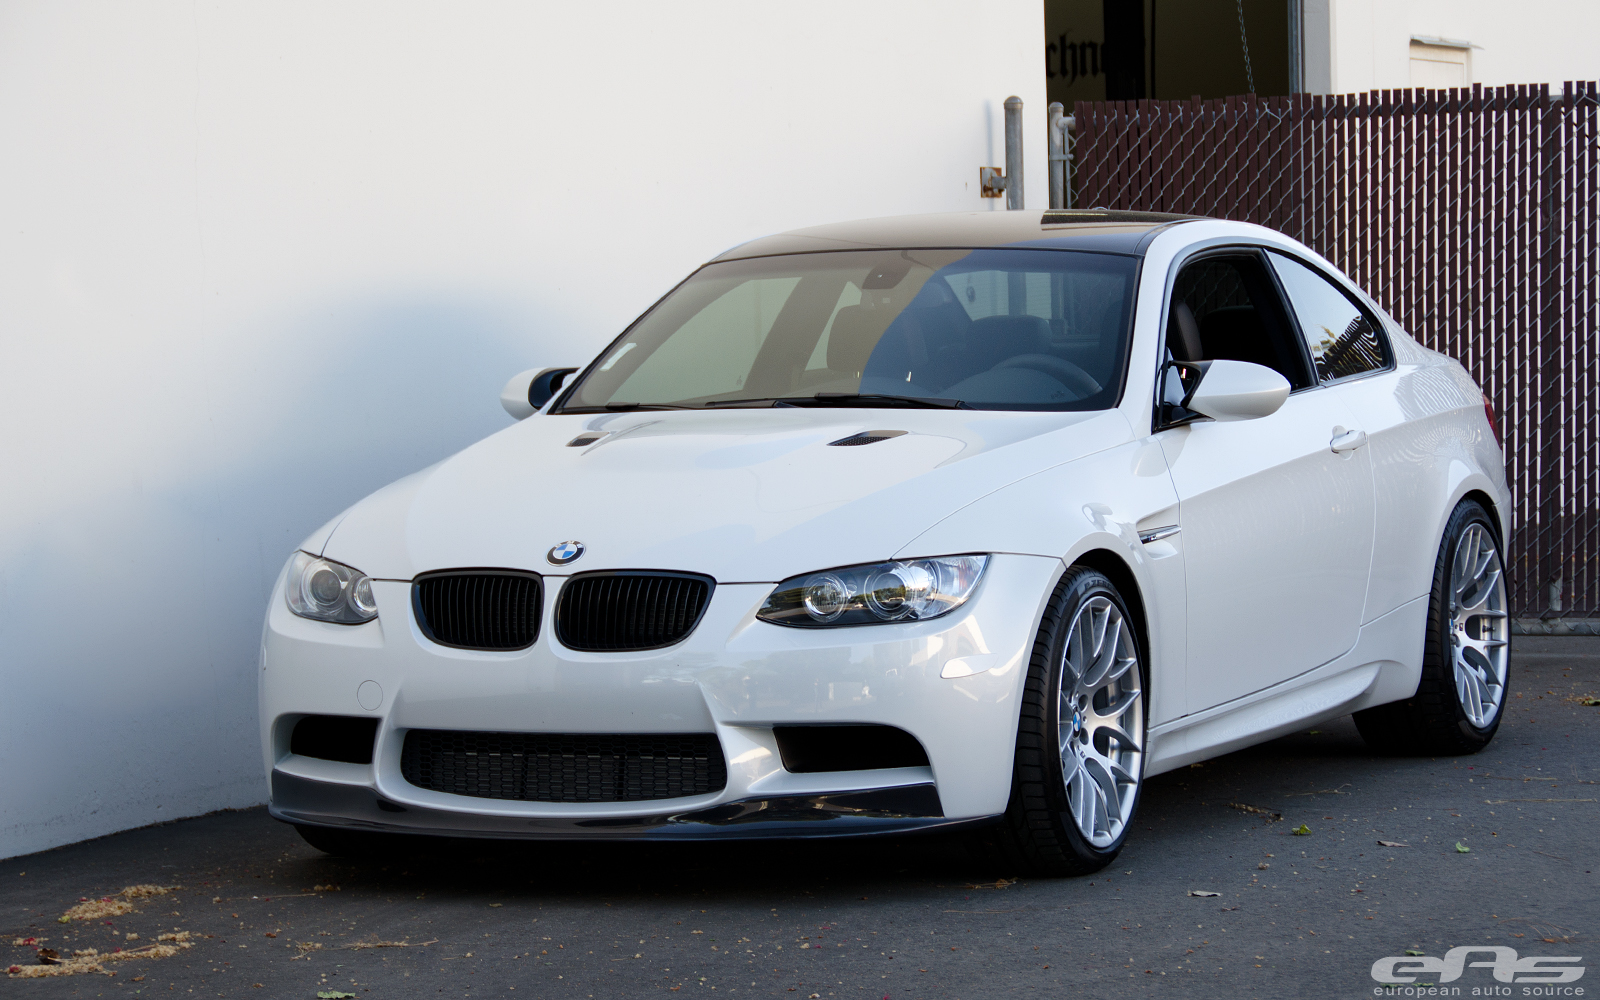 mineral white bmw e92 m3 zcp gets subtle changes at eas autoevolution. Black Bedroom Furniture Sets. Home Design Ideas